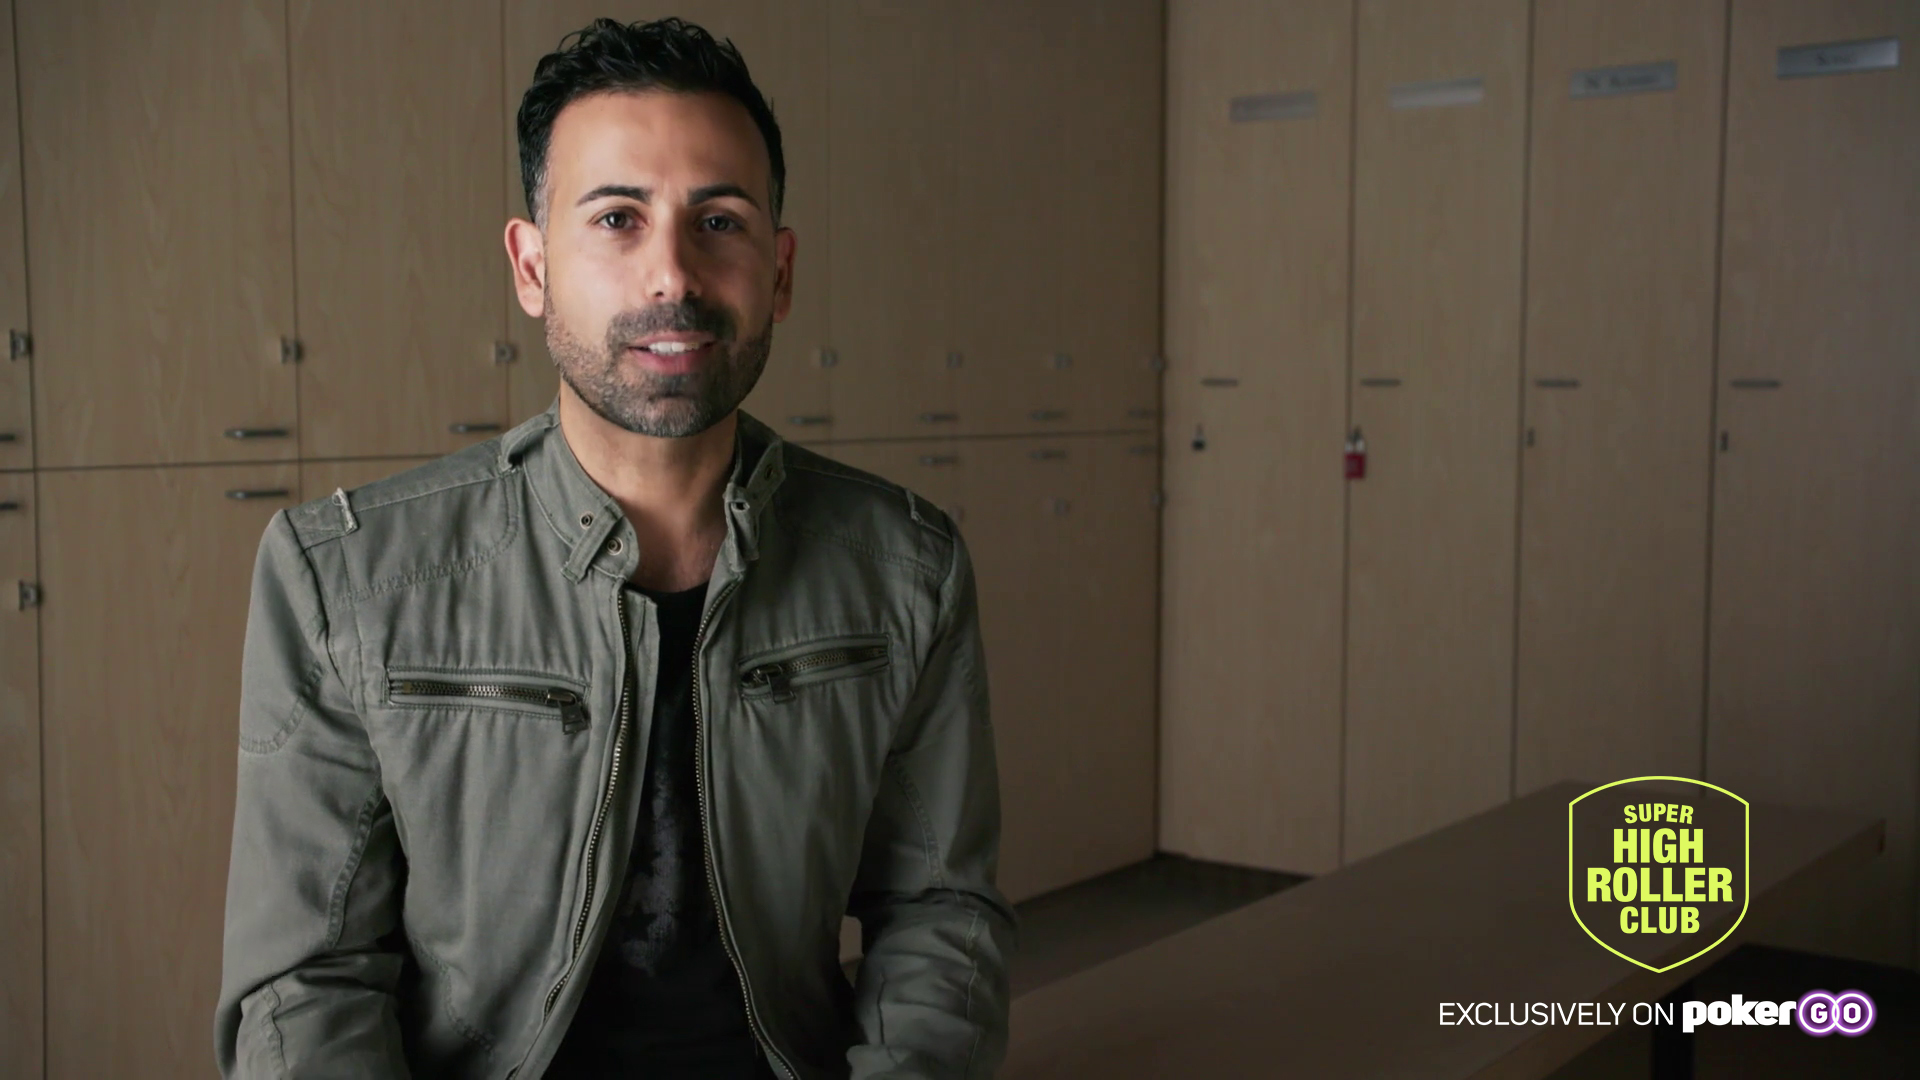 Ali Nejad on the set for the Super High Roller Club - available exclusively on PokerGO.